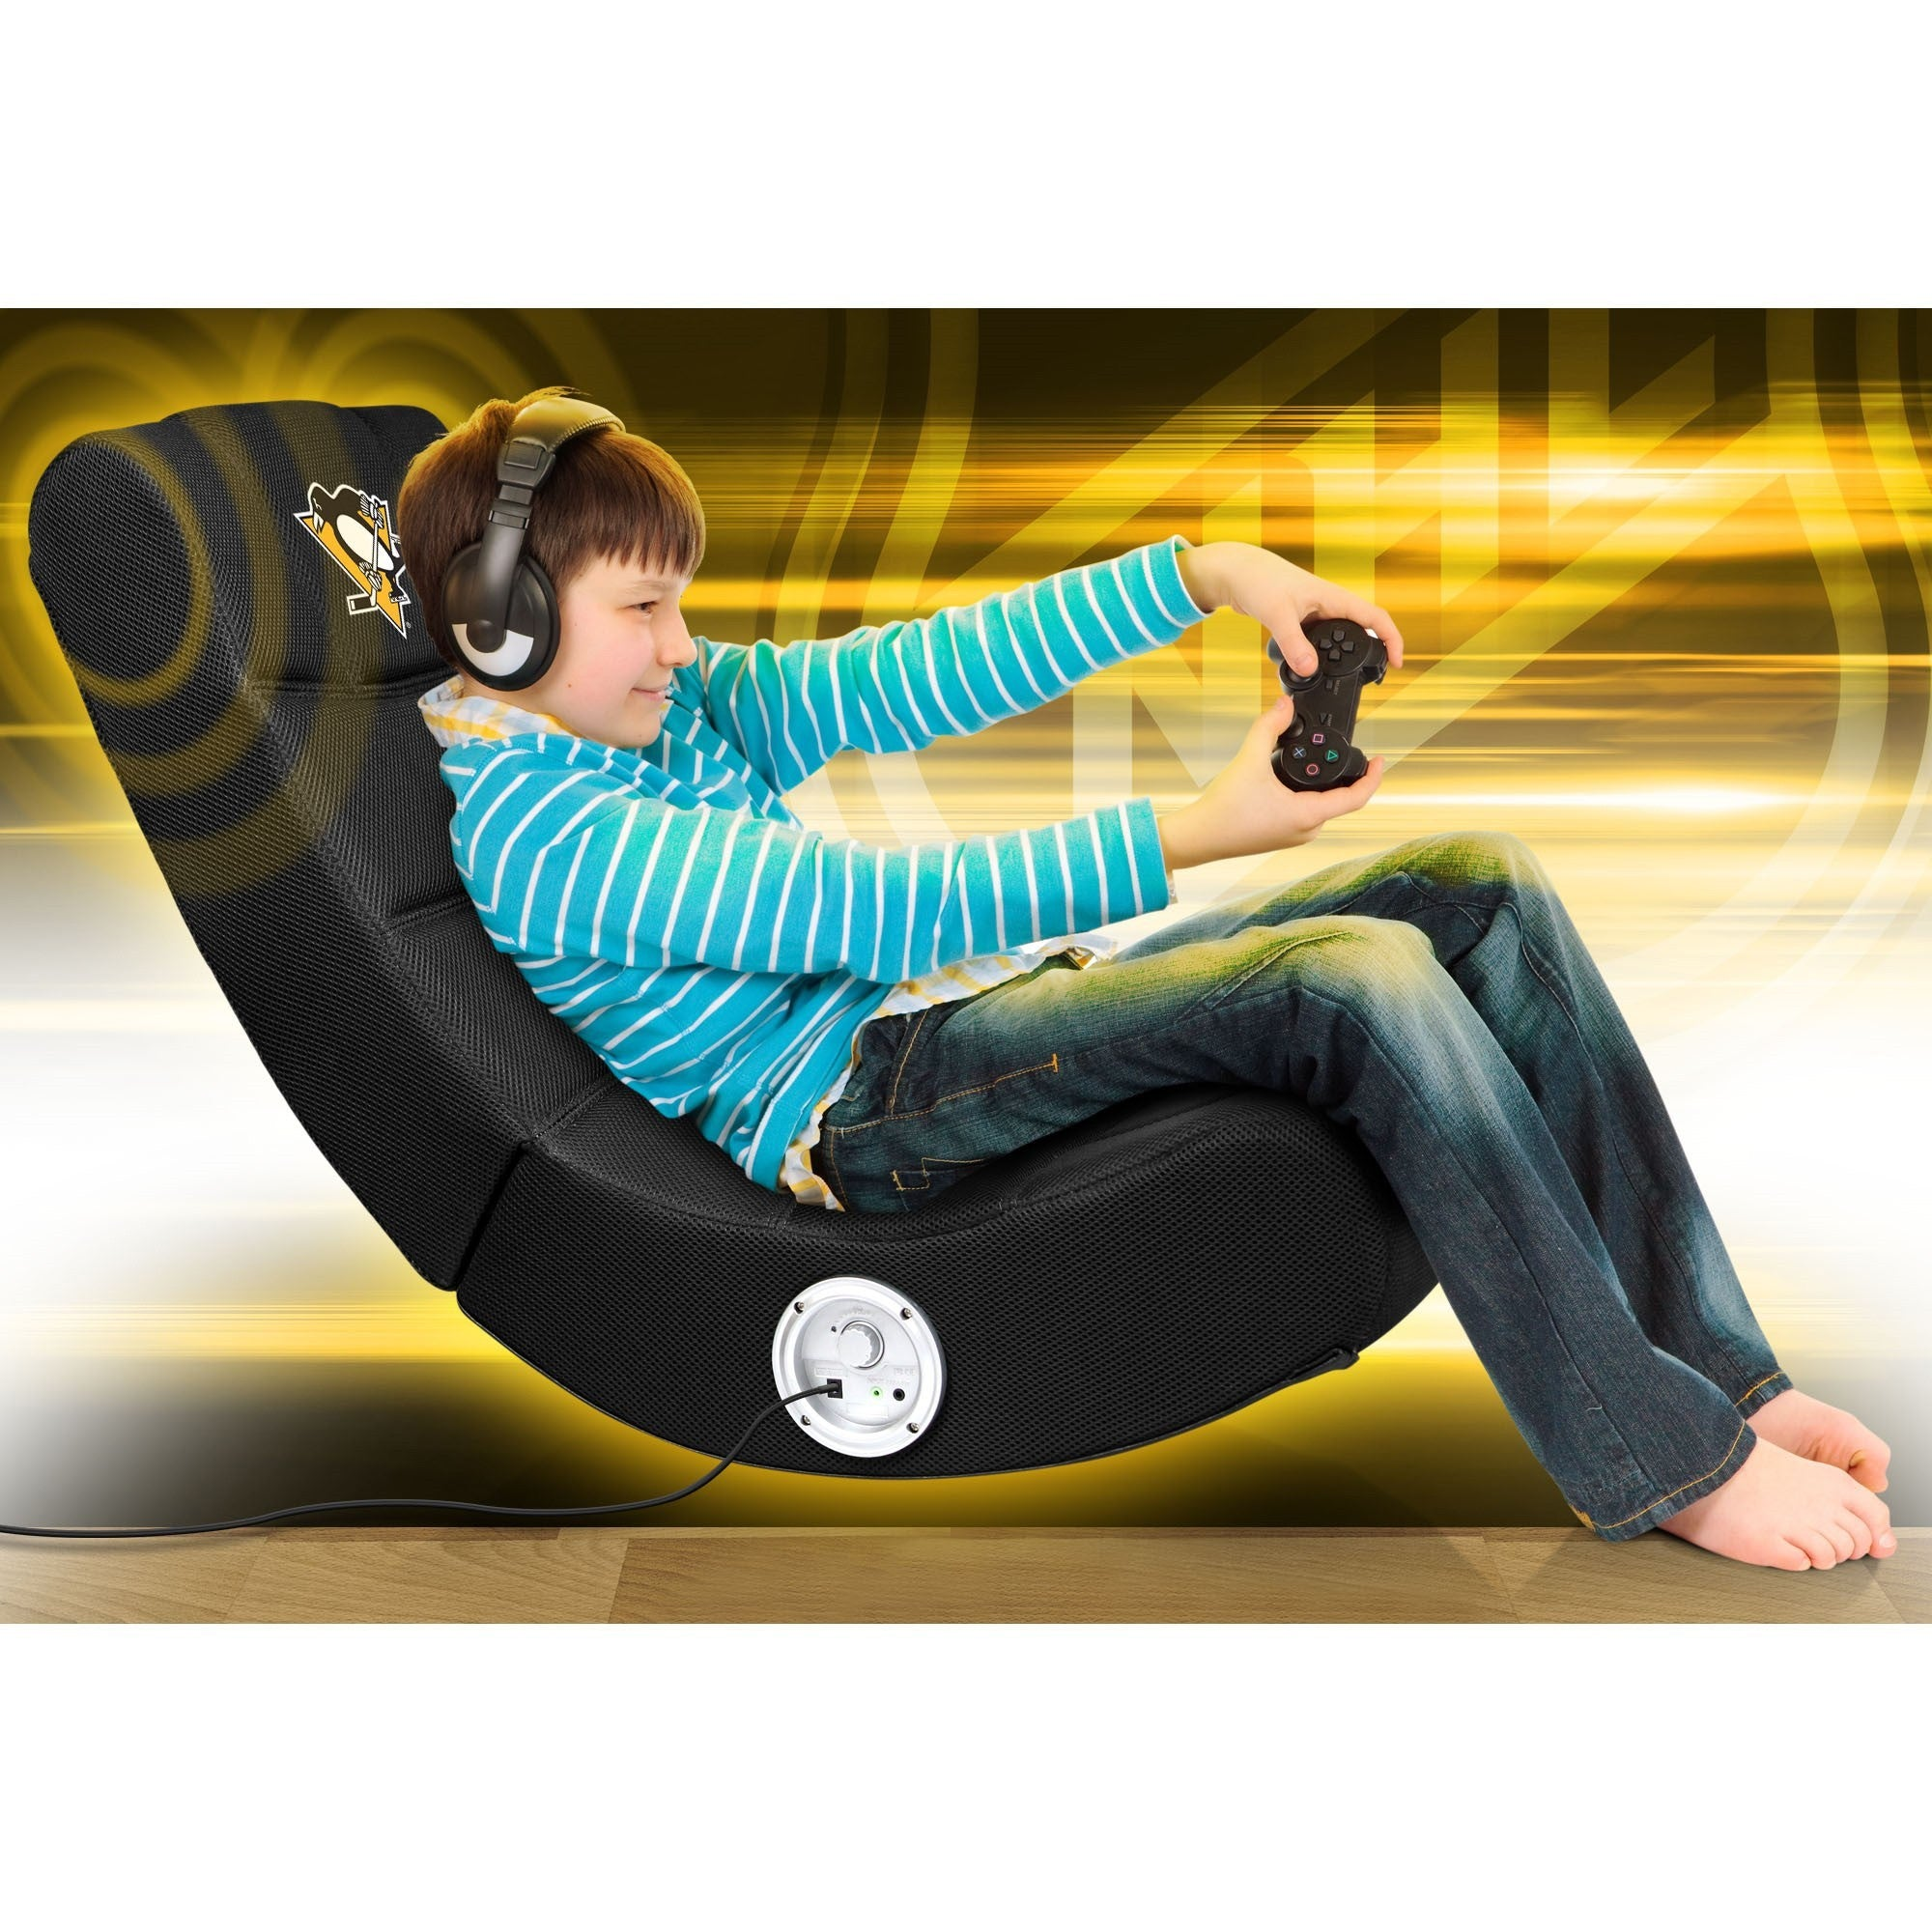 sc 1 st  Racer Gaming Chairs & Pittsburgh Penguins® Bluetooth Rocker Gaming Chair - Racer Gaming Chairs